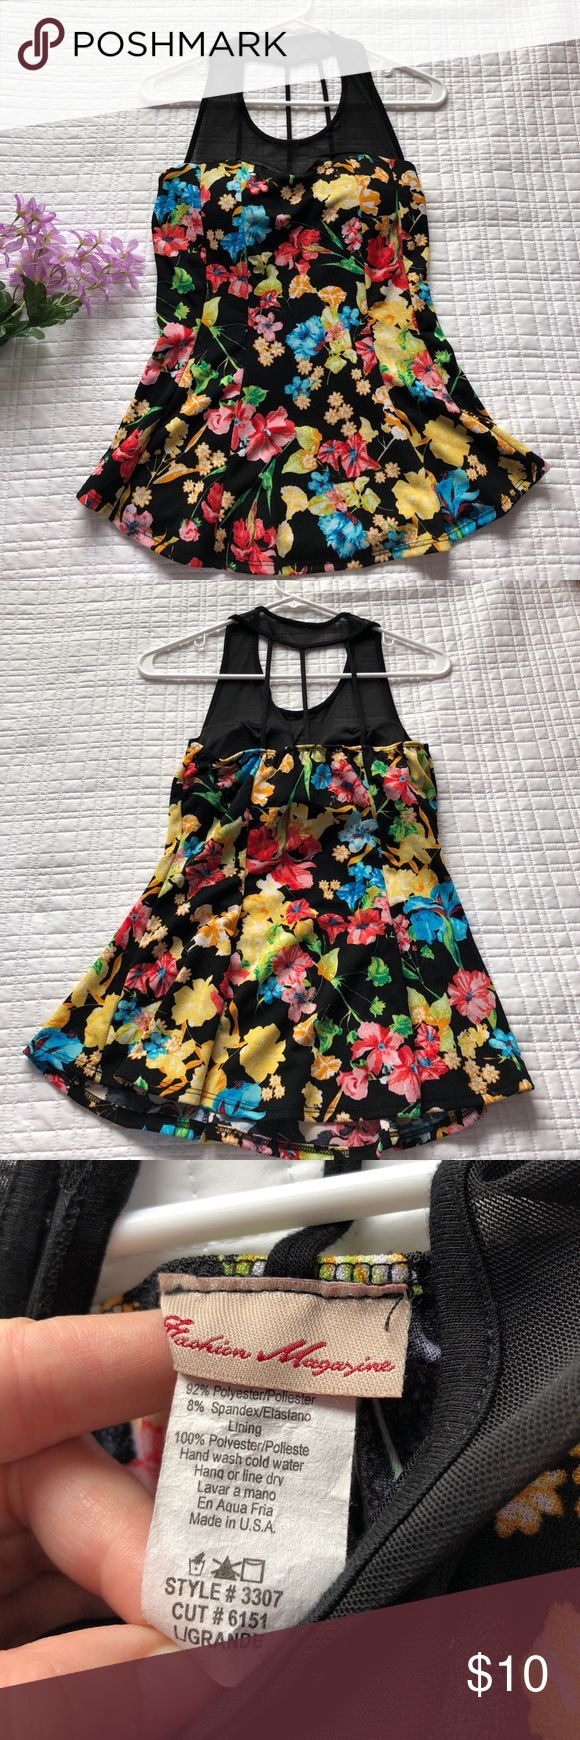 Fashion magazine Colorful floral peplum top Bright peplum top with string detail in back, black mesh at the top Fashion Magazine Tops Blouses